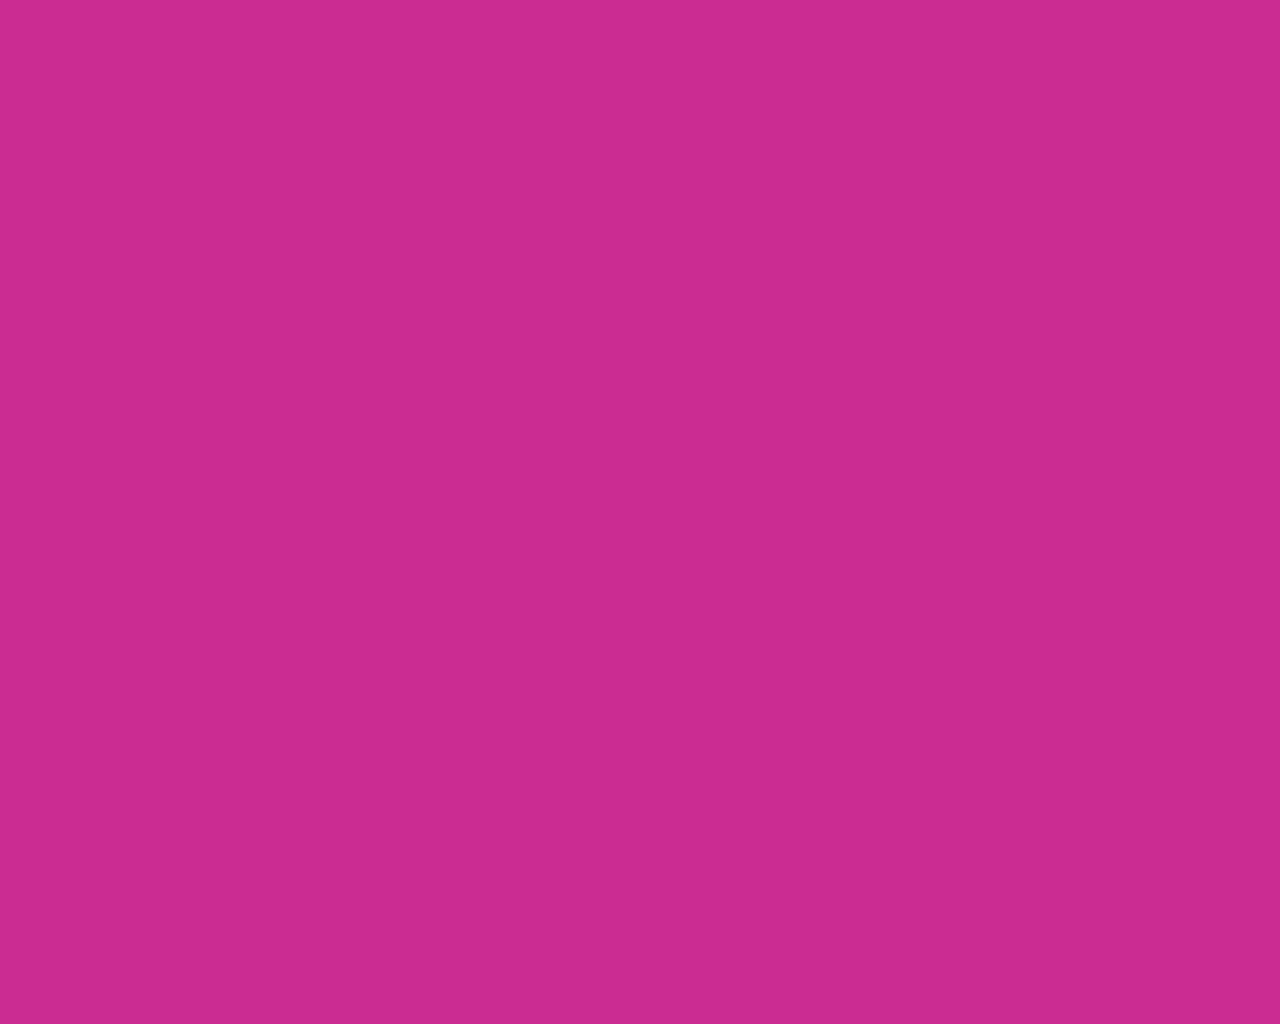 1280x1024 Royal Fuchsia Solid Color Background